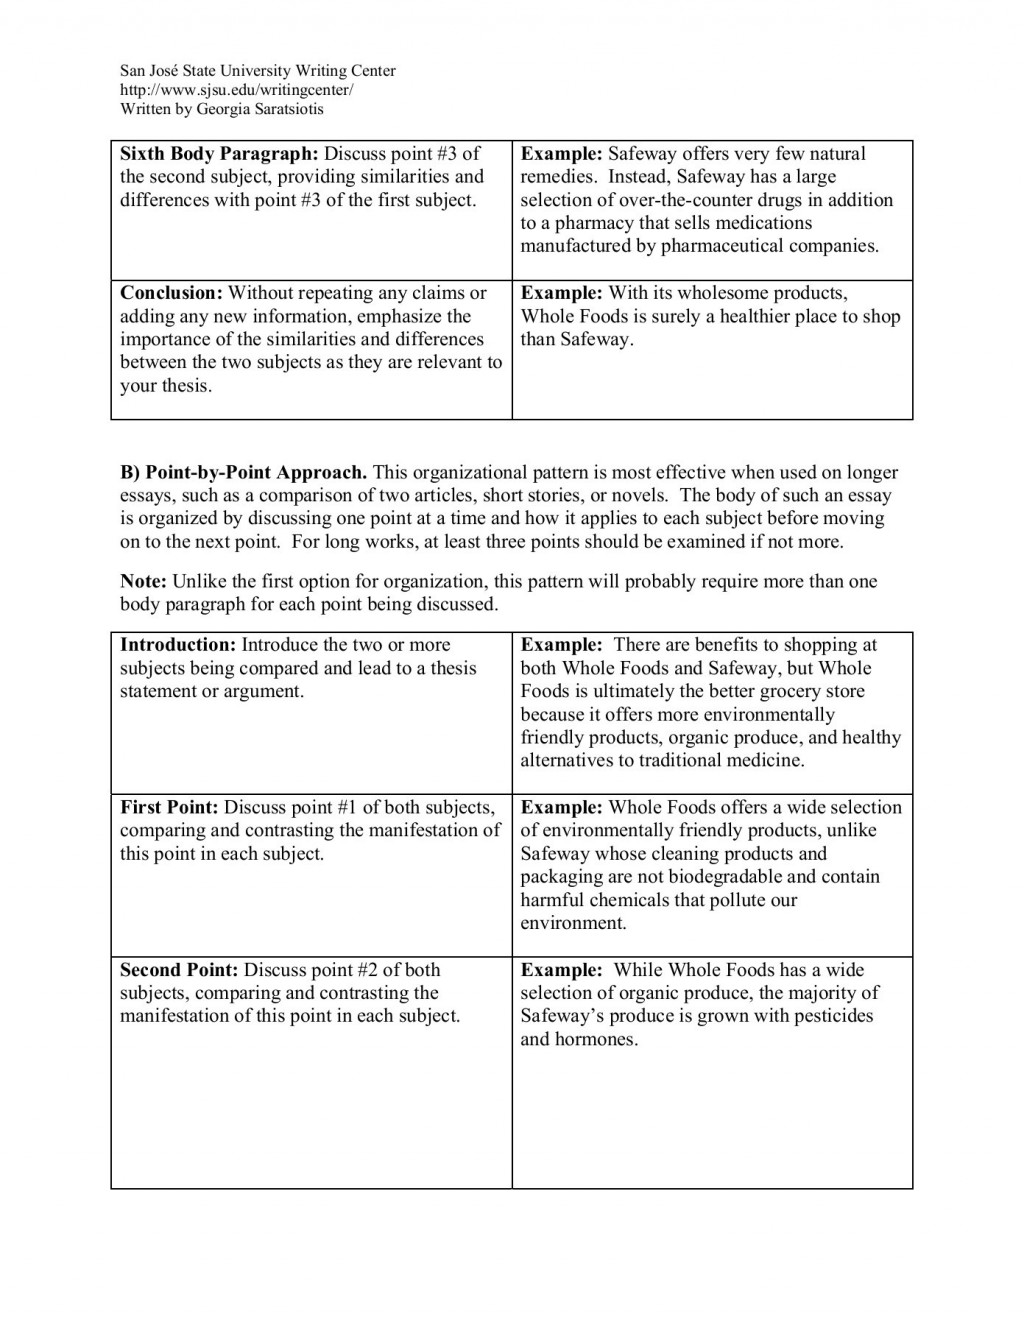 014 How To Do Compare And Contrast Essay Outstanding A Start Write Mla Format Middle School Large